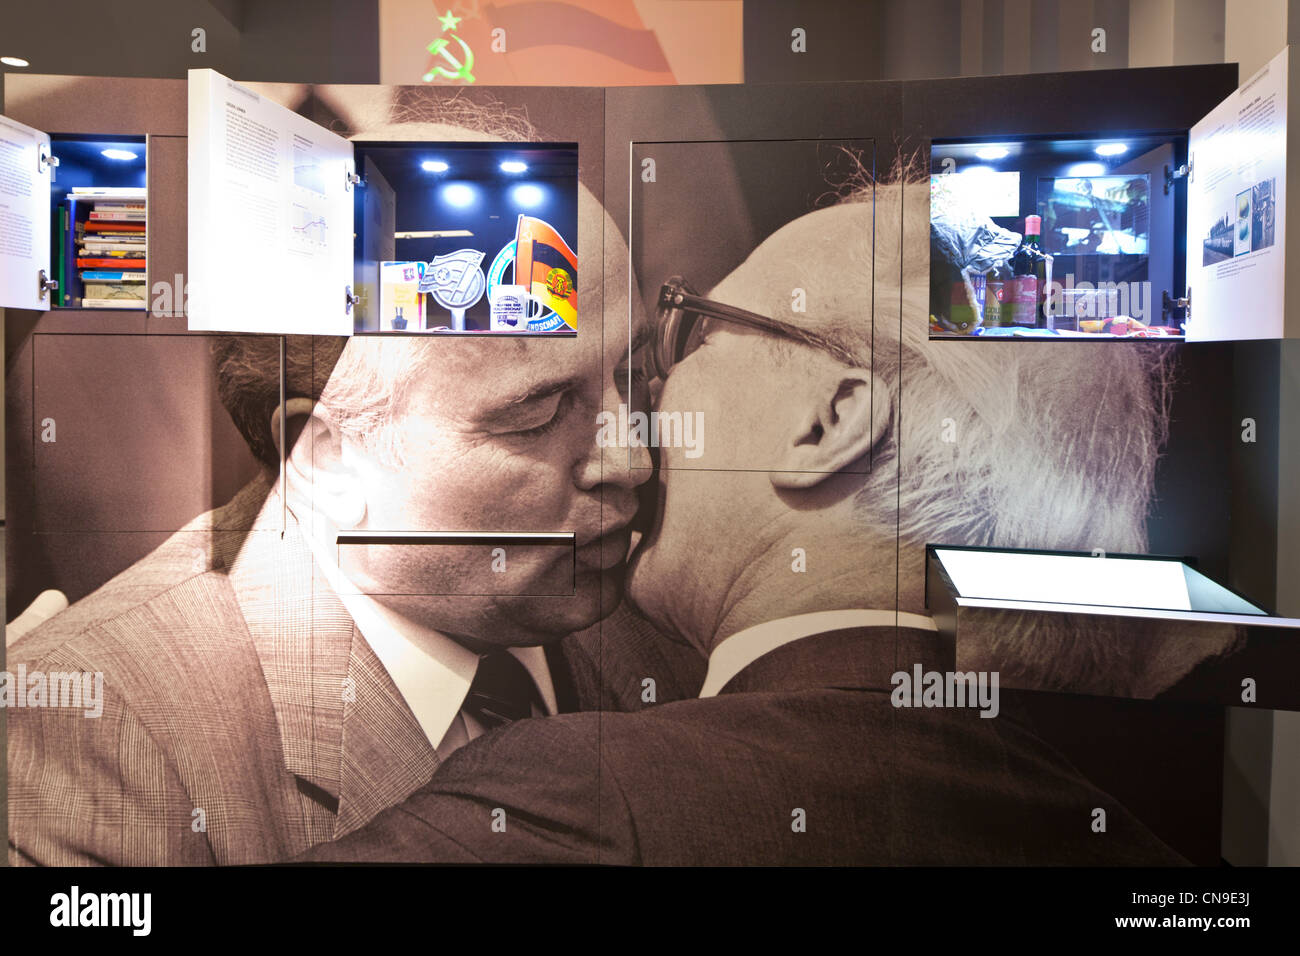 Germany, Berlin, DDR Museum, a museum opened in 2006 to recall the everyday life of former East Germany, kiss between Stock Photo